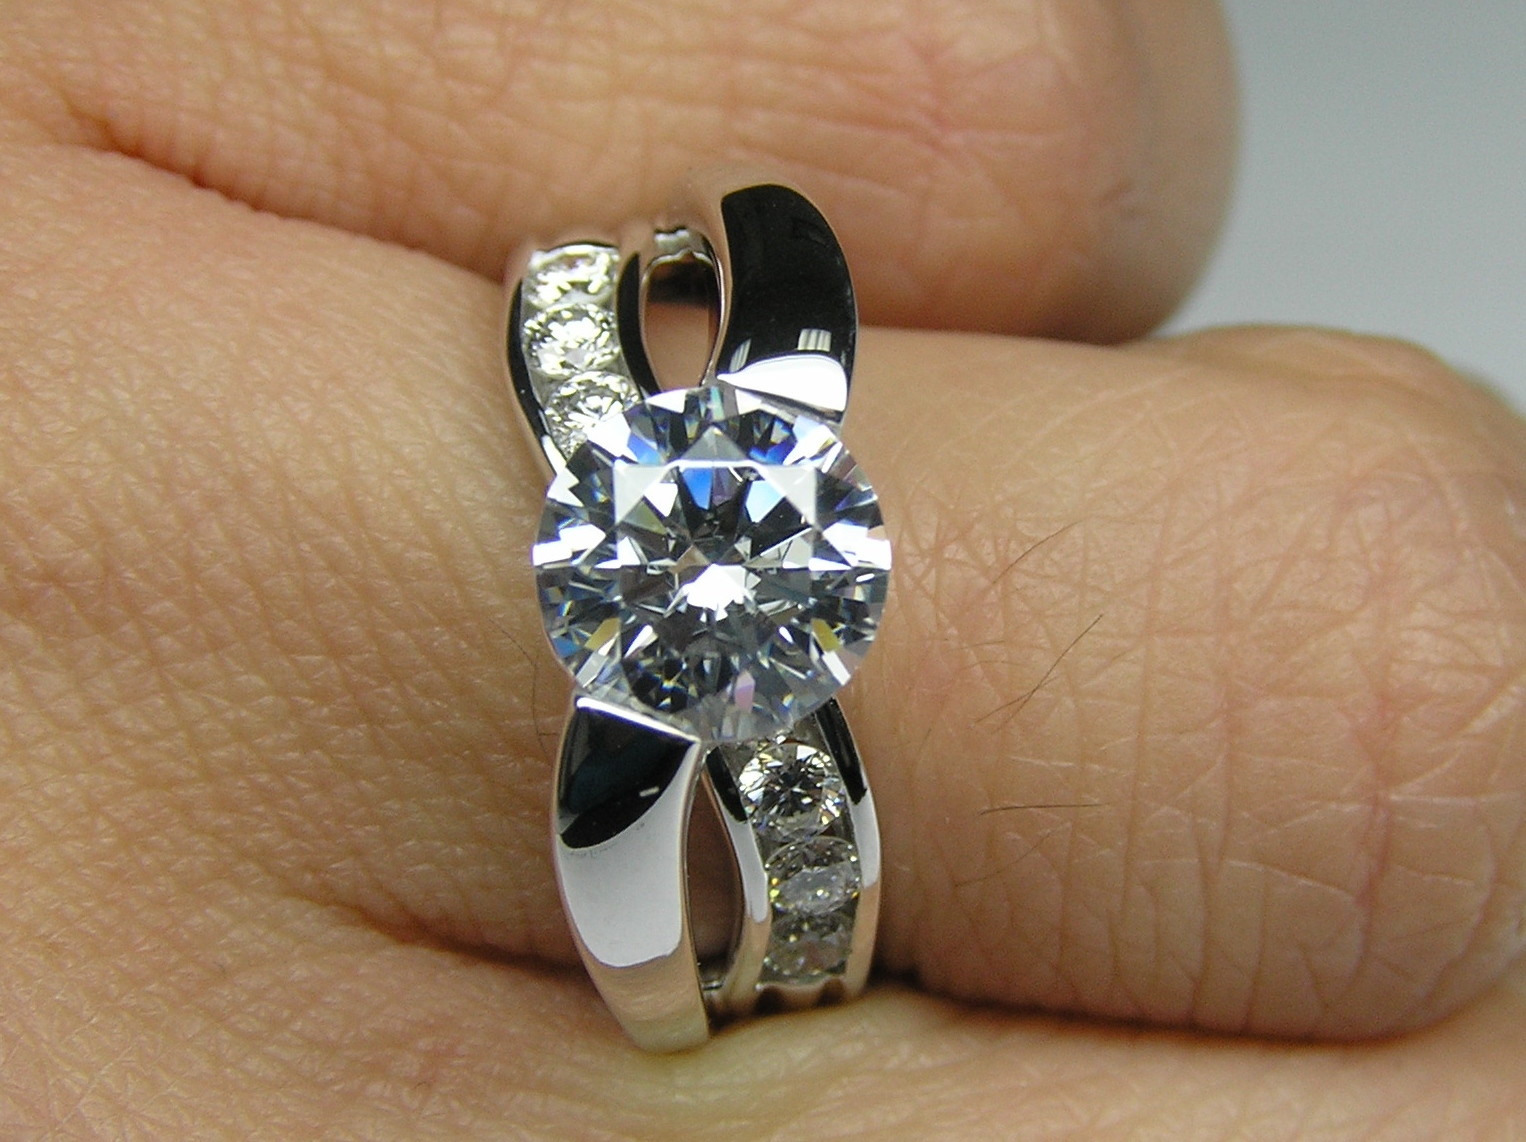 Criss-Cross Bypass Bridge Diamond Engagement Ring 0.50 tcw. In 14K White Gold